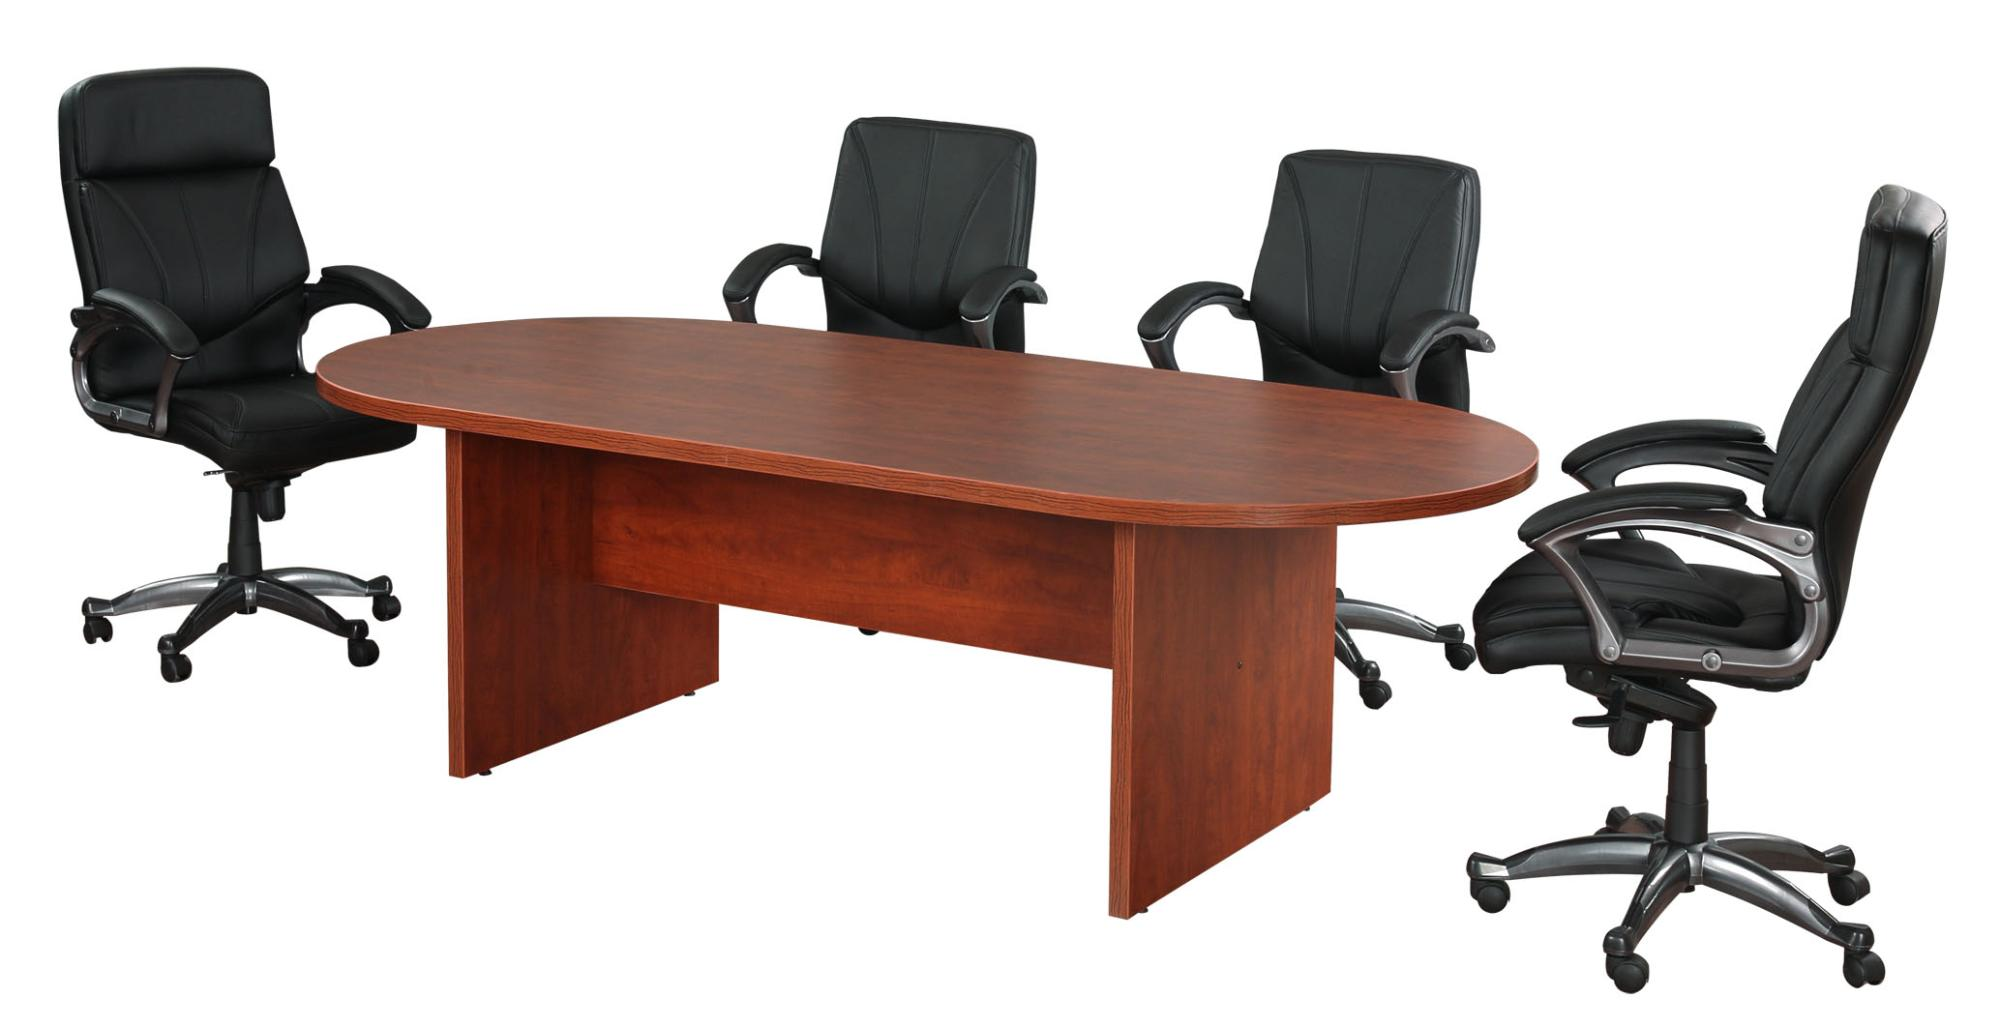 Conference Training Tables - 6 foot round conference table